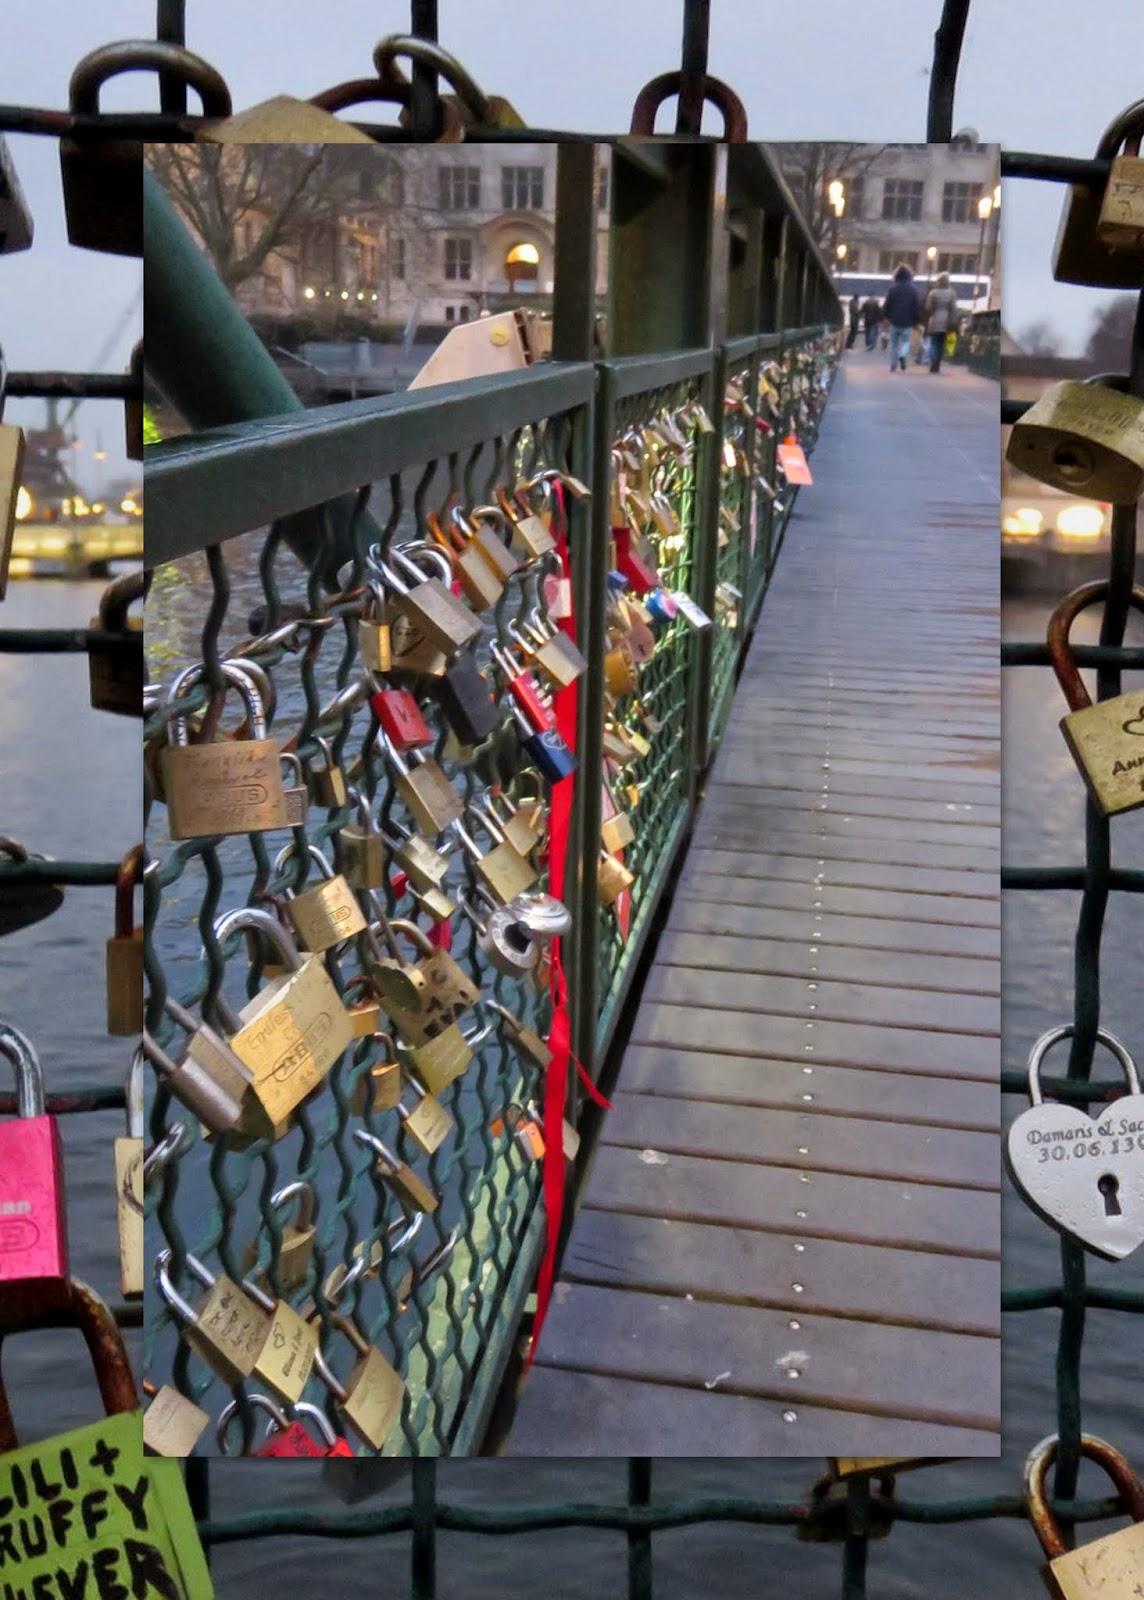 Zurich - Love locks on the bridge